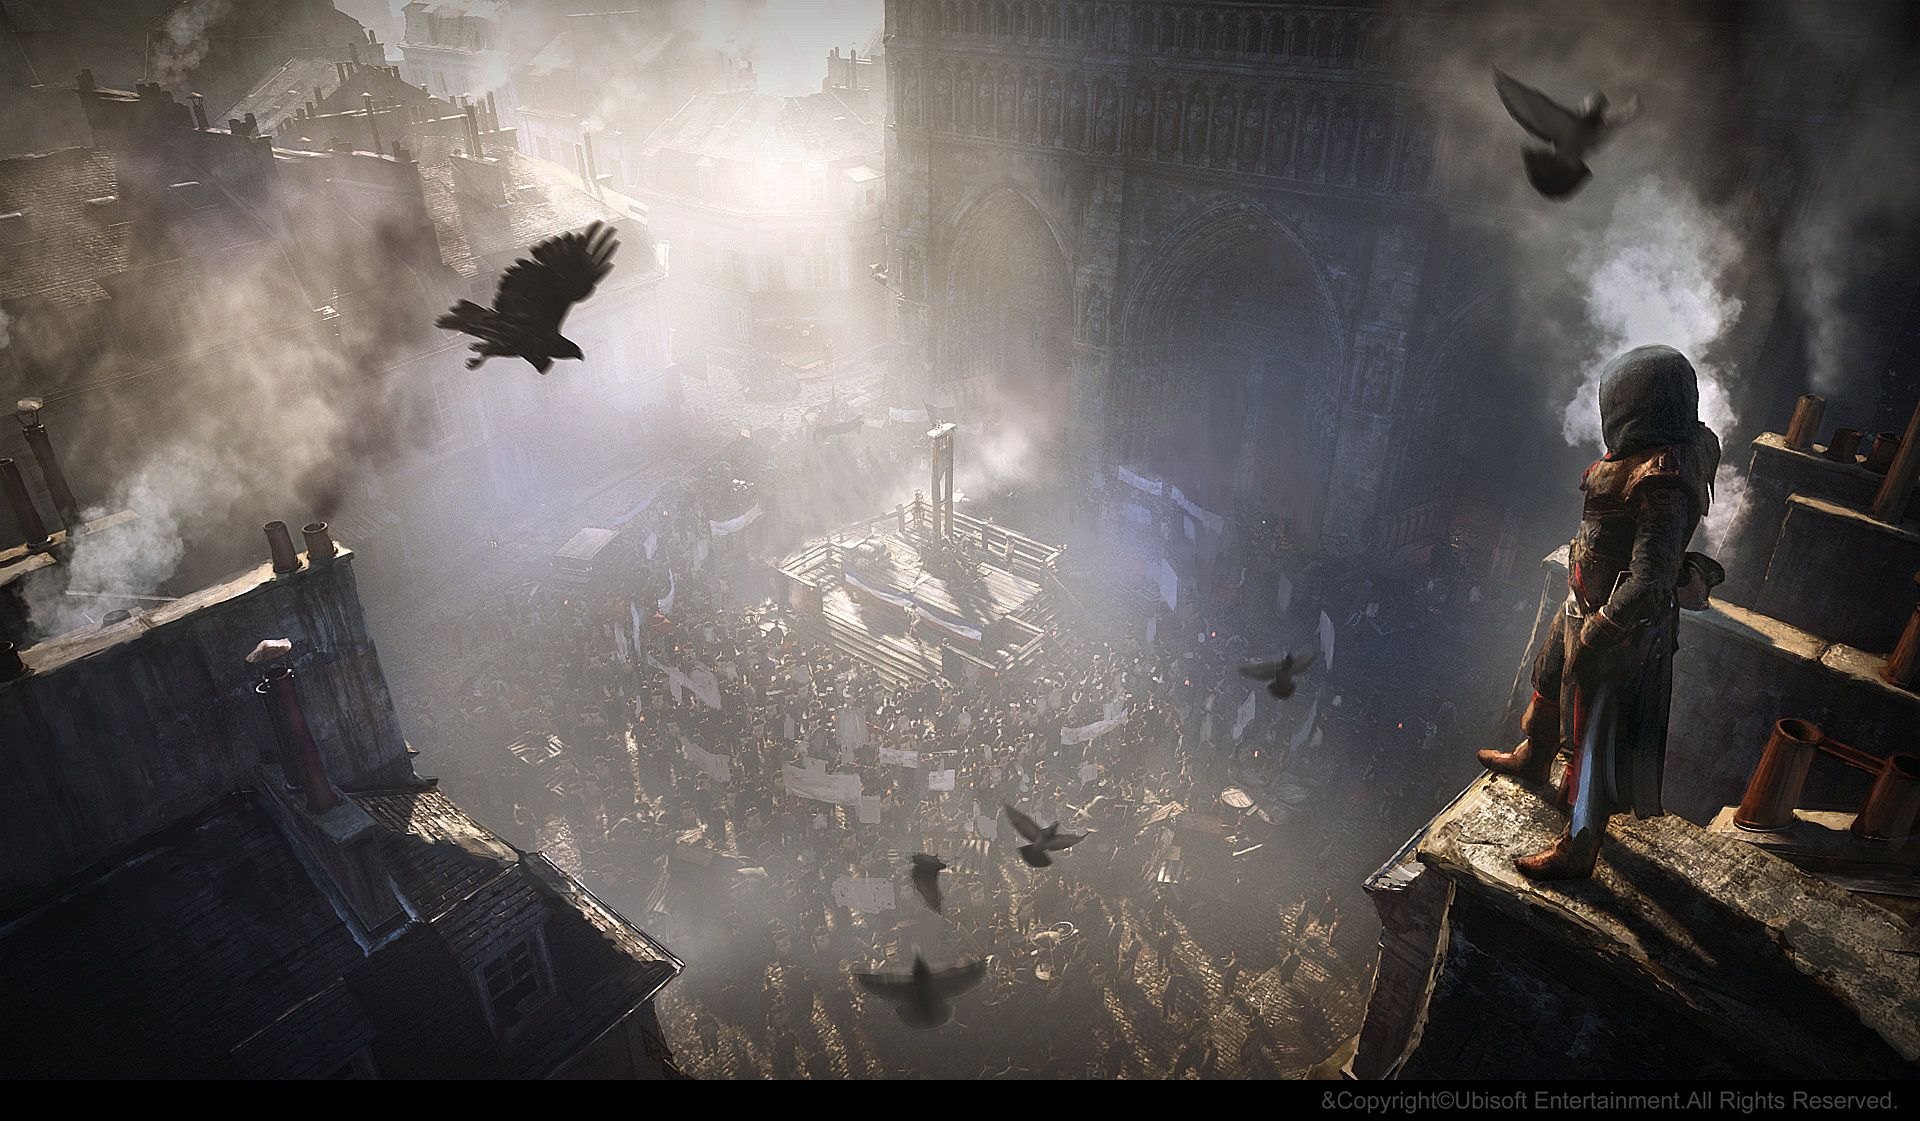 Assassins Creed Artwork Picture For iPhone, Blackberry, iPad ...